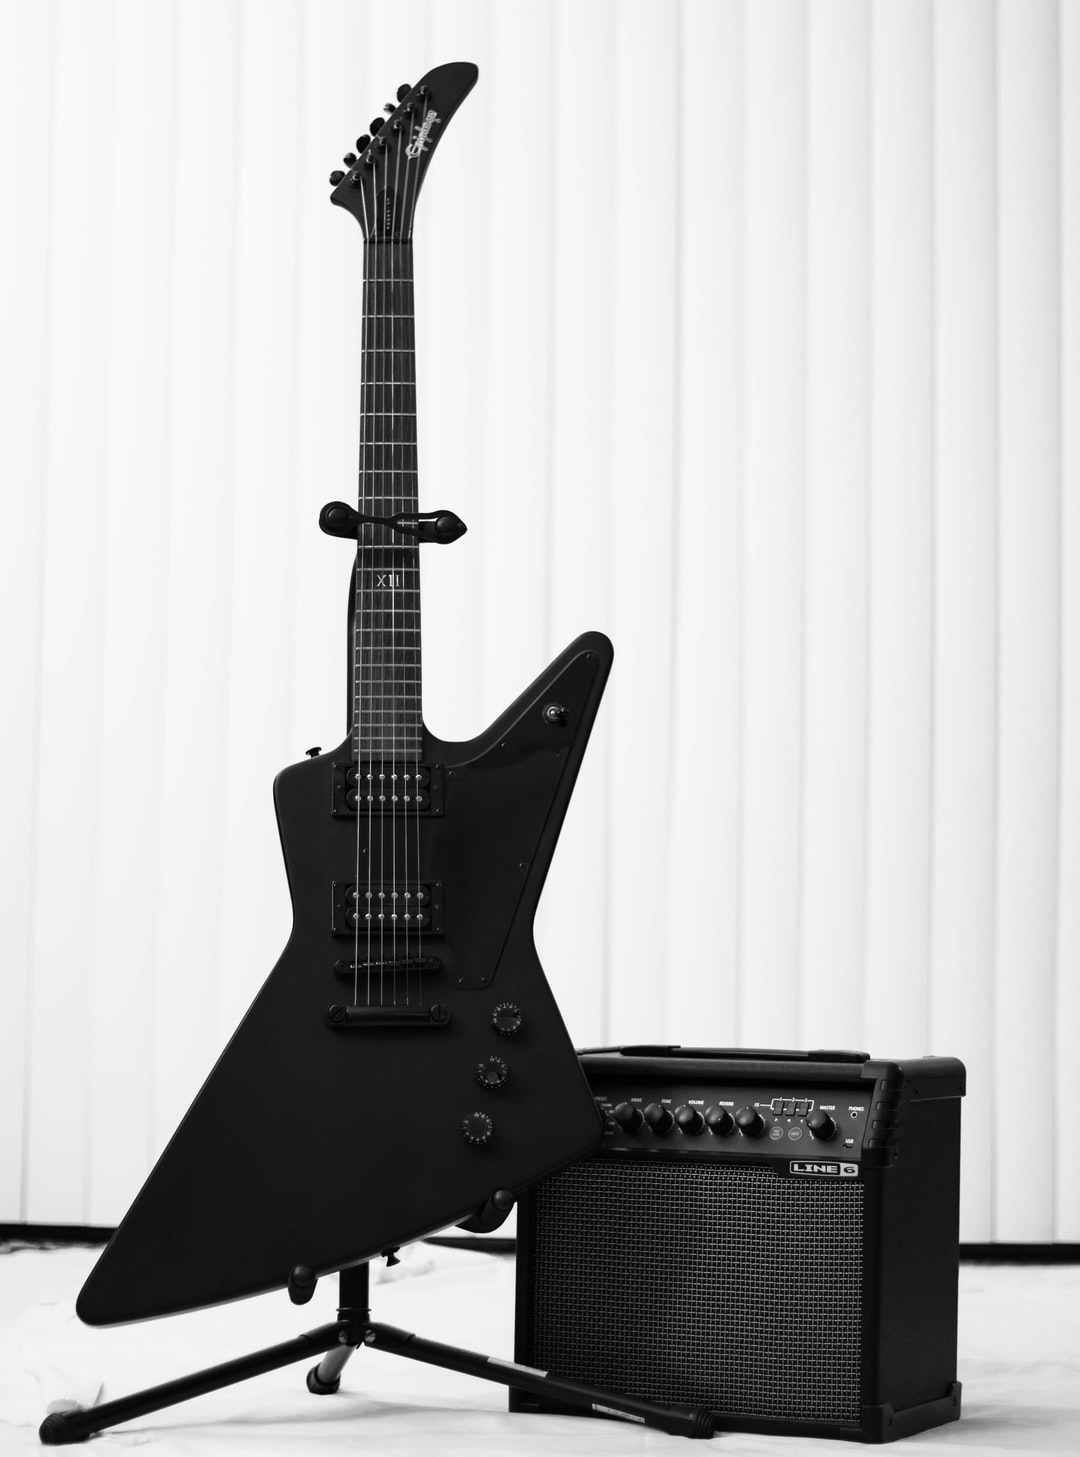 This is my new guitar and amp. Oh yeah I do love guitars